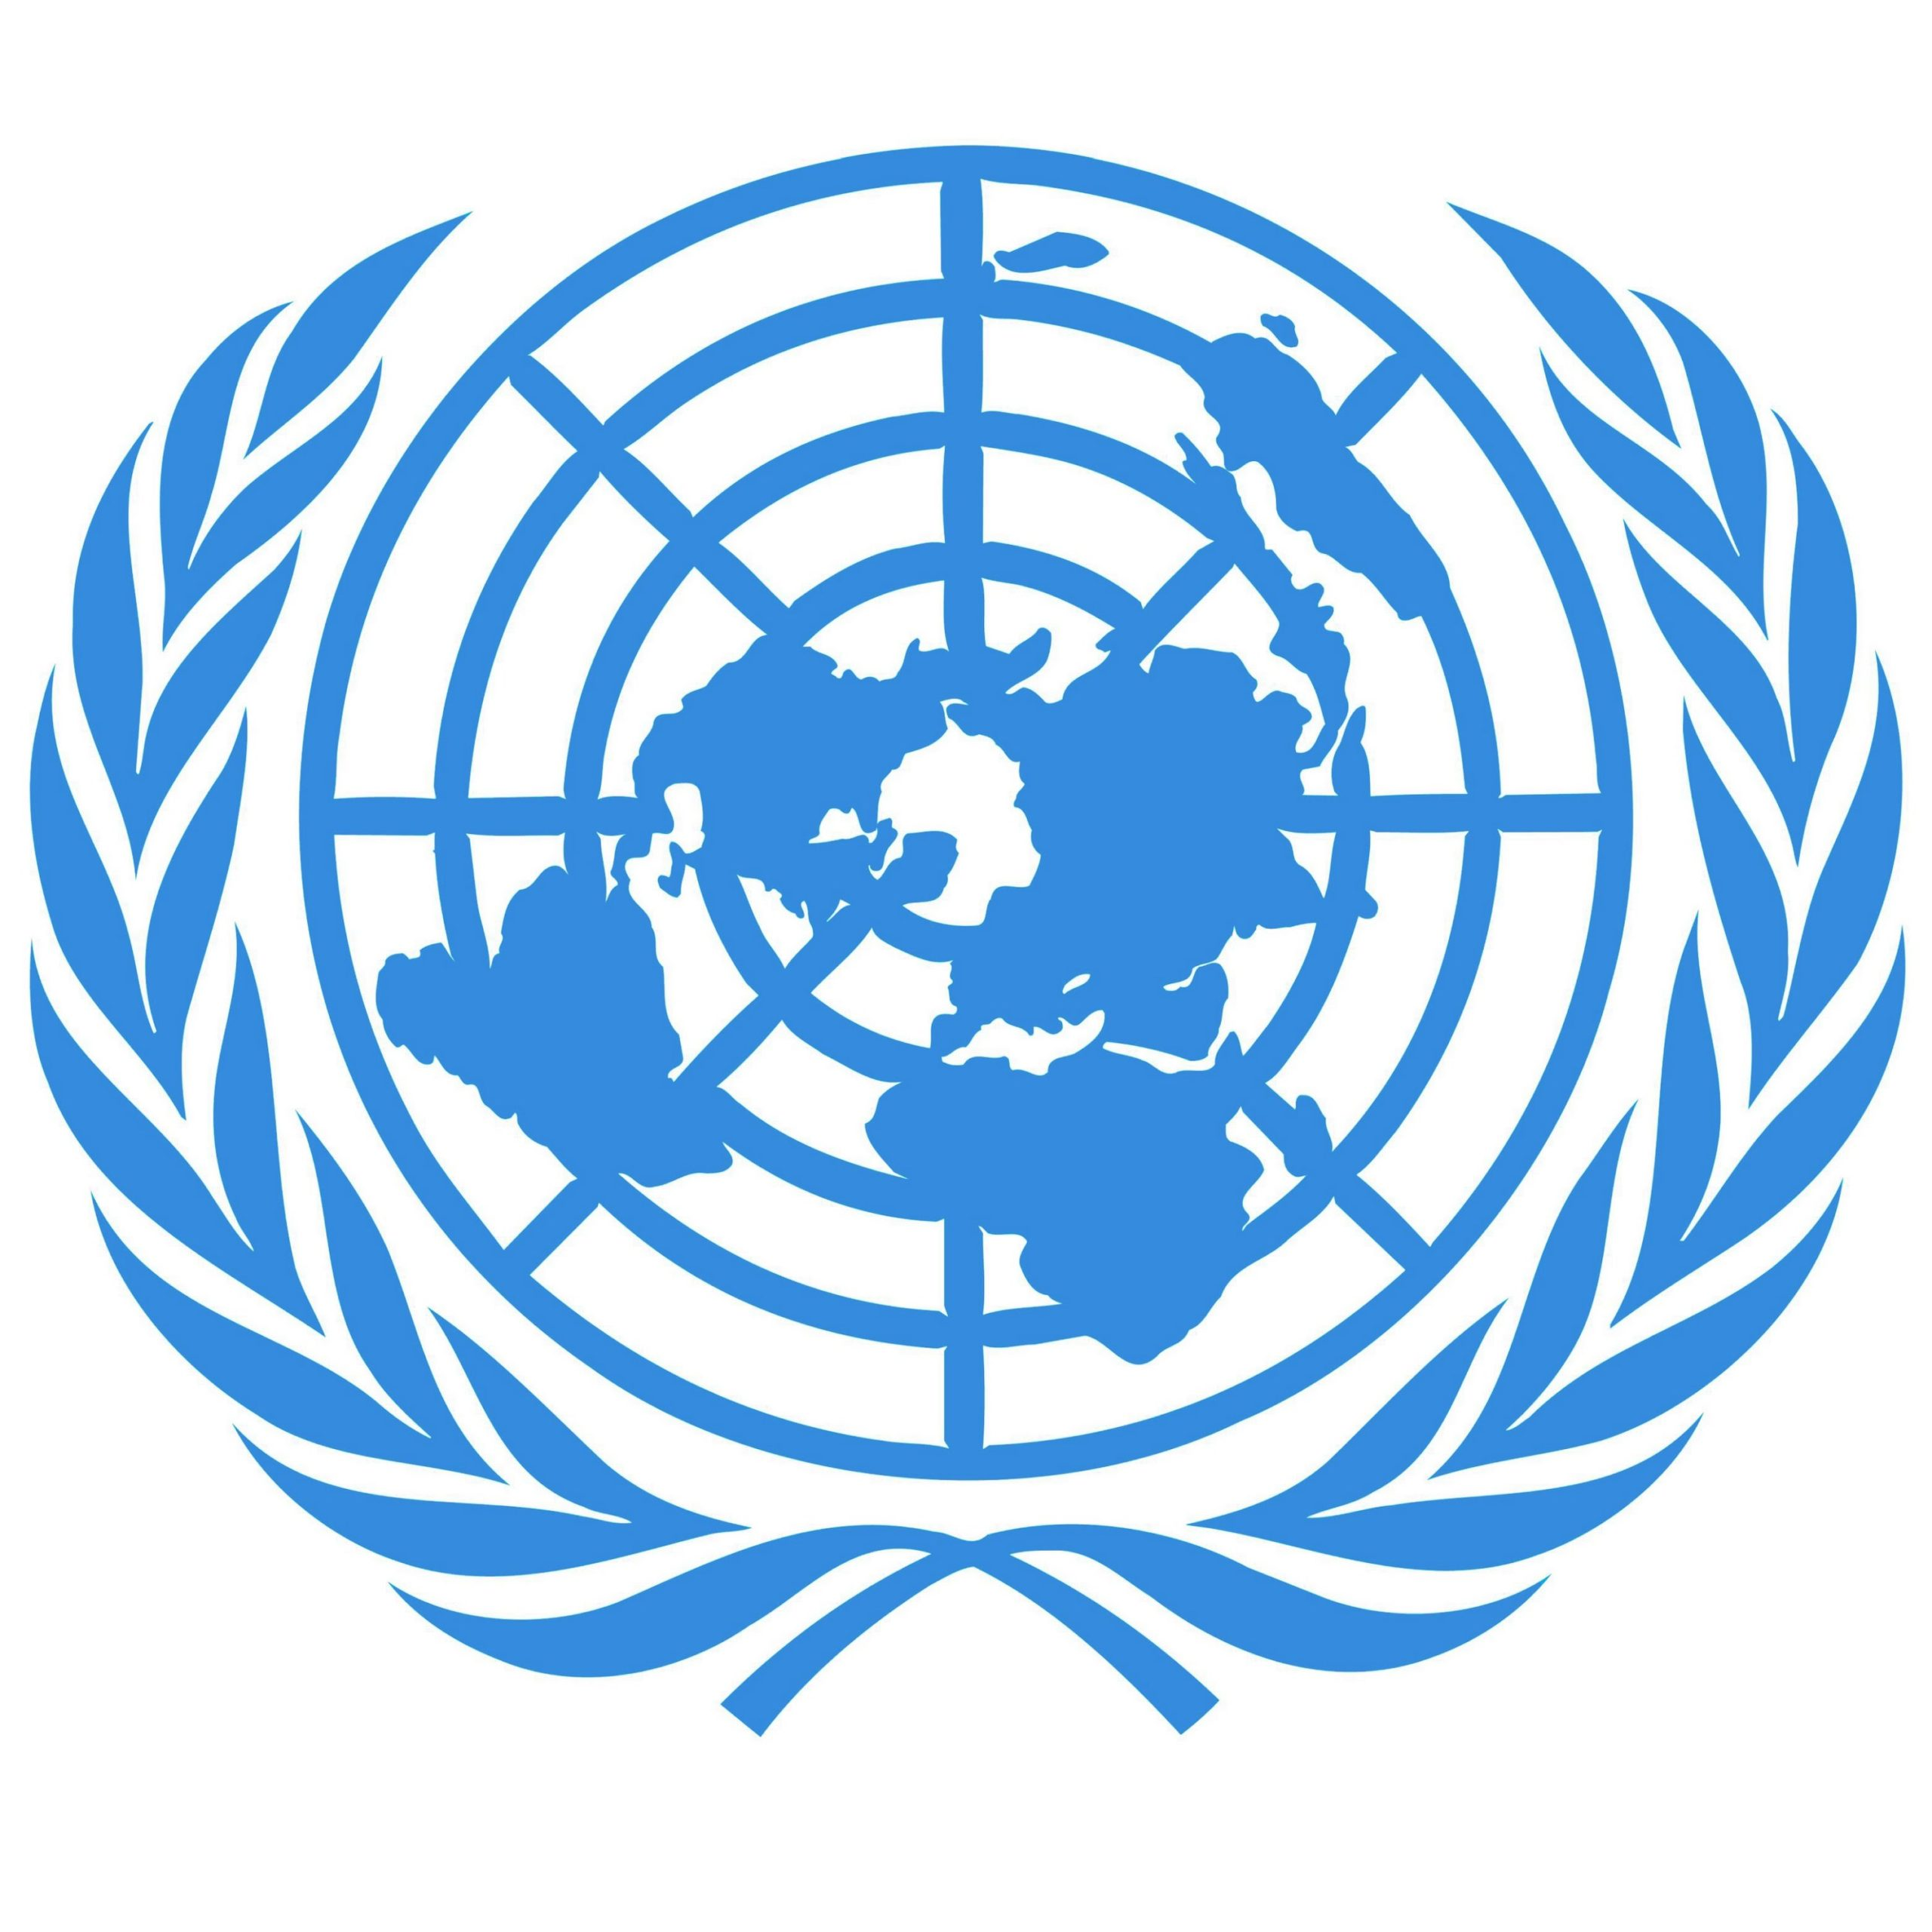 LOGO-ONU-scaled.jpg